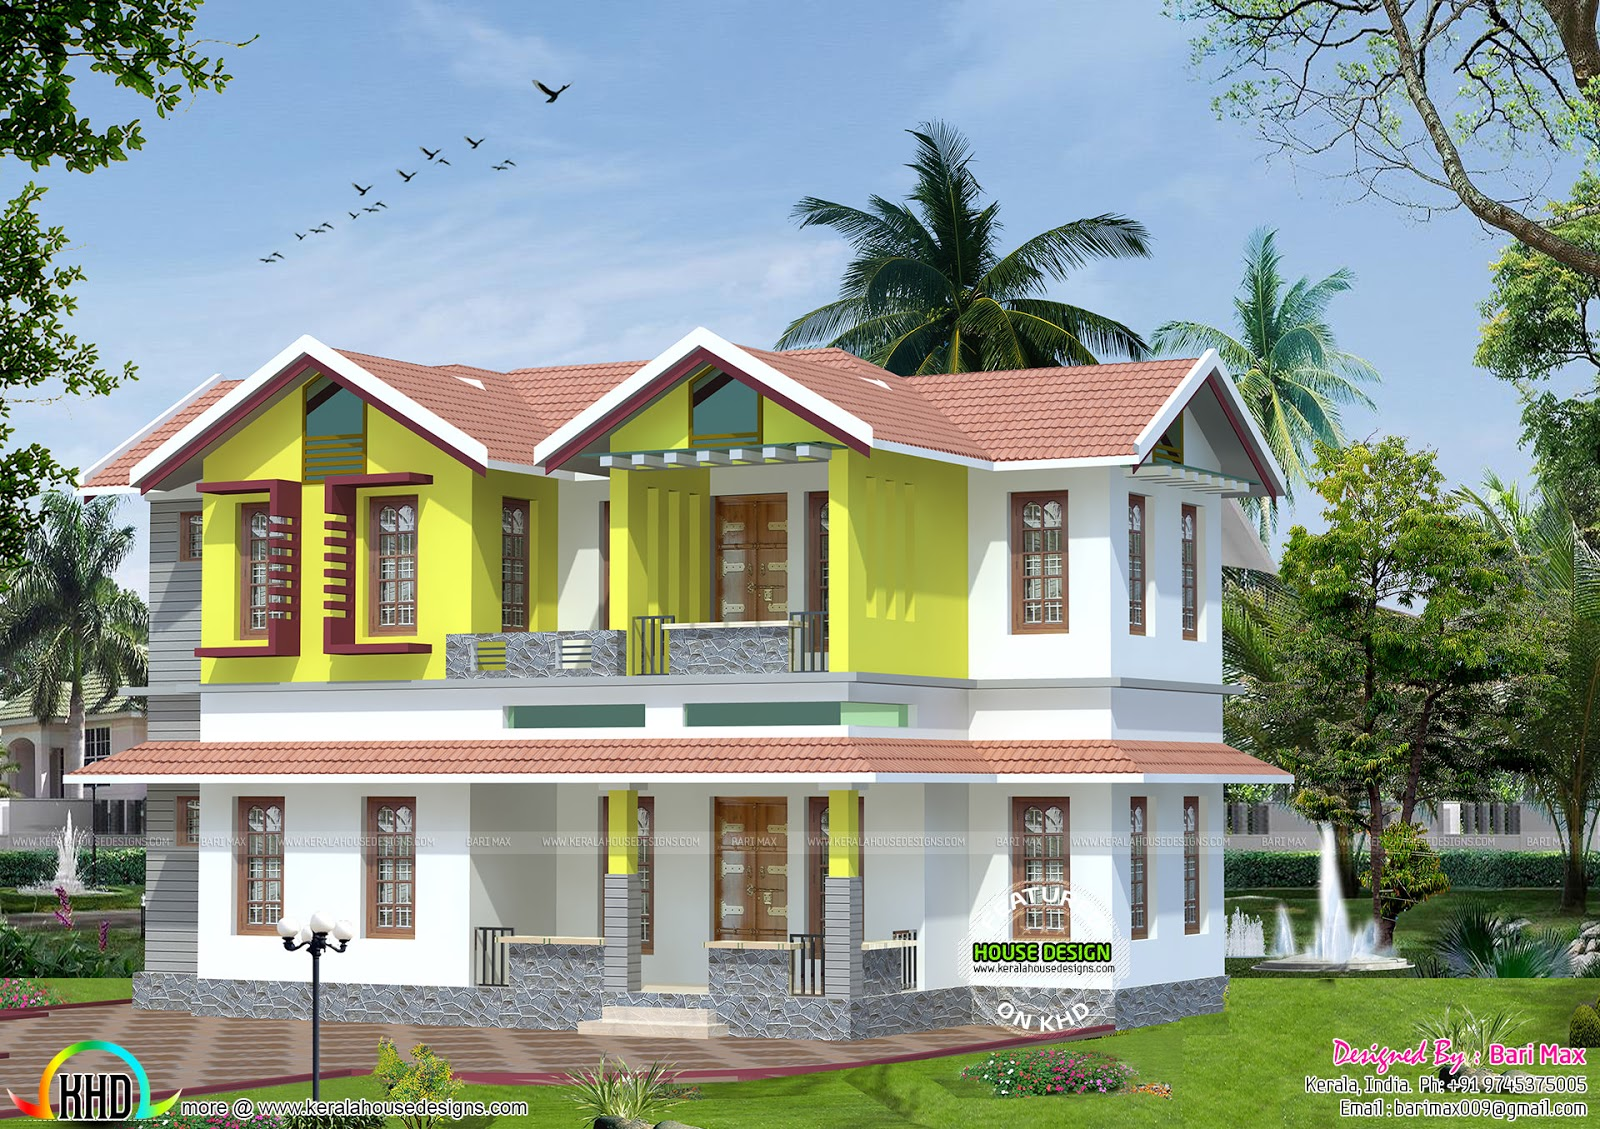 1475 sq ft low cost home kerala home design and floor plans for Low cost per square foot house plans